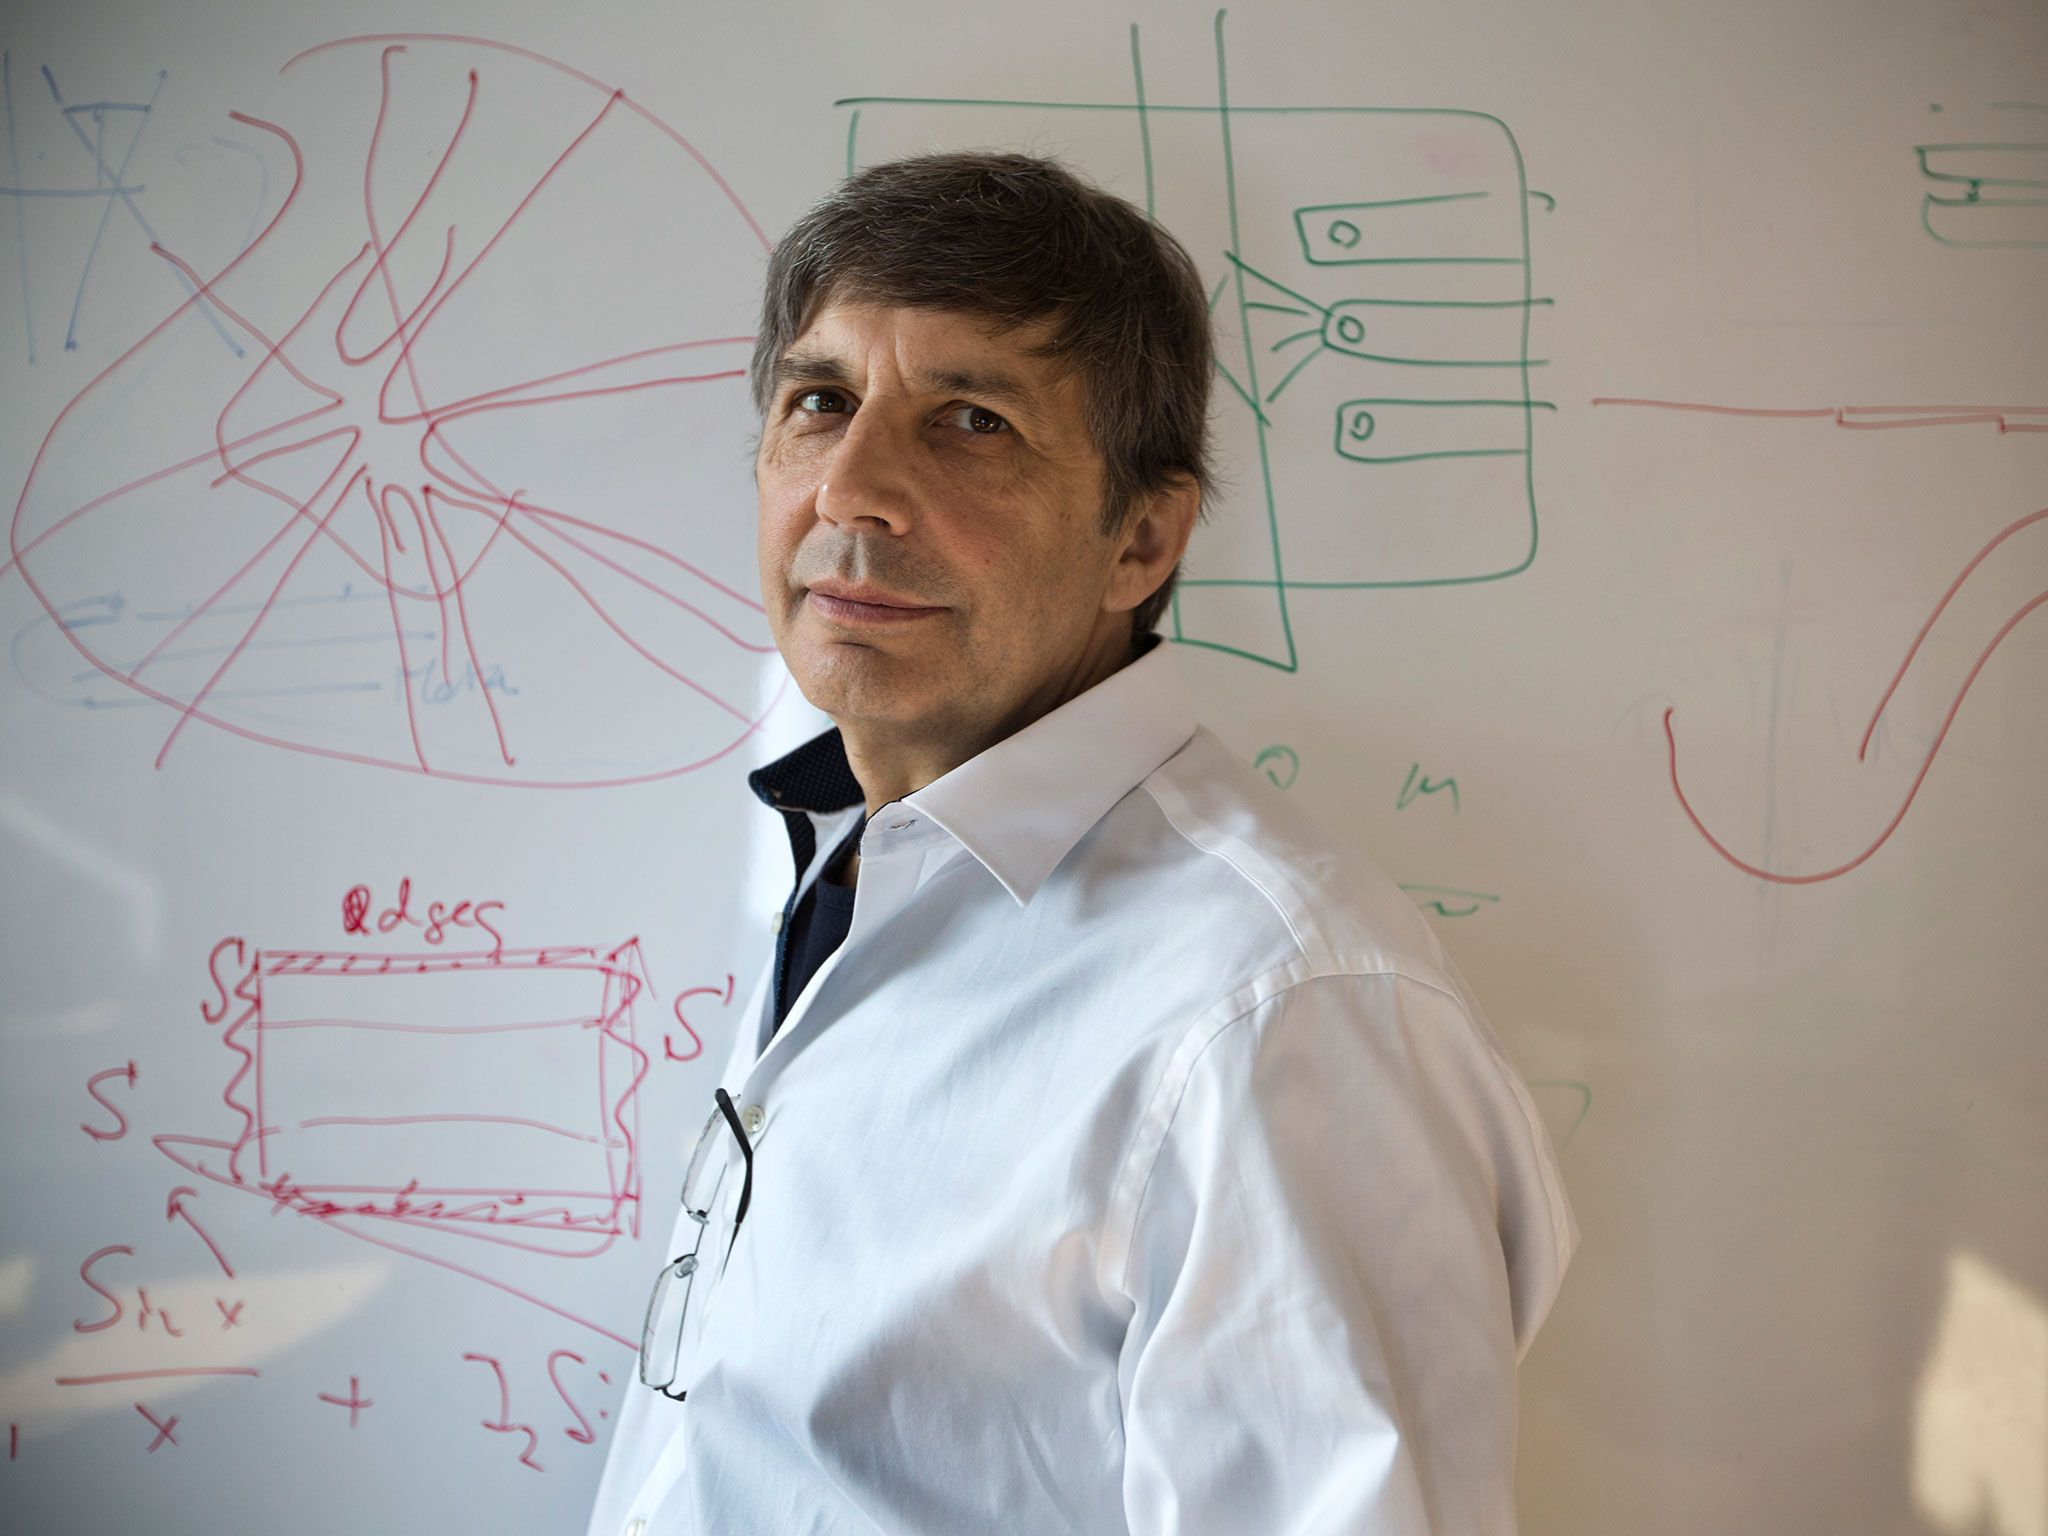 He will forever be the father of graphene, the wonder material one-atom-thick and 200 times stronger than steel, but for a few days this summer, Sir Andre Geim was someone else entirely.